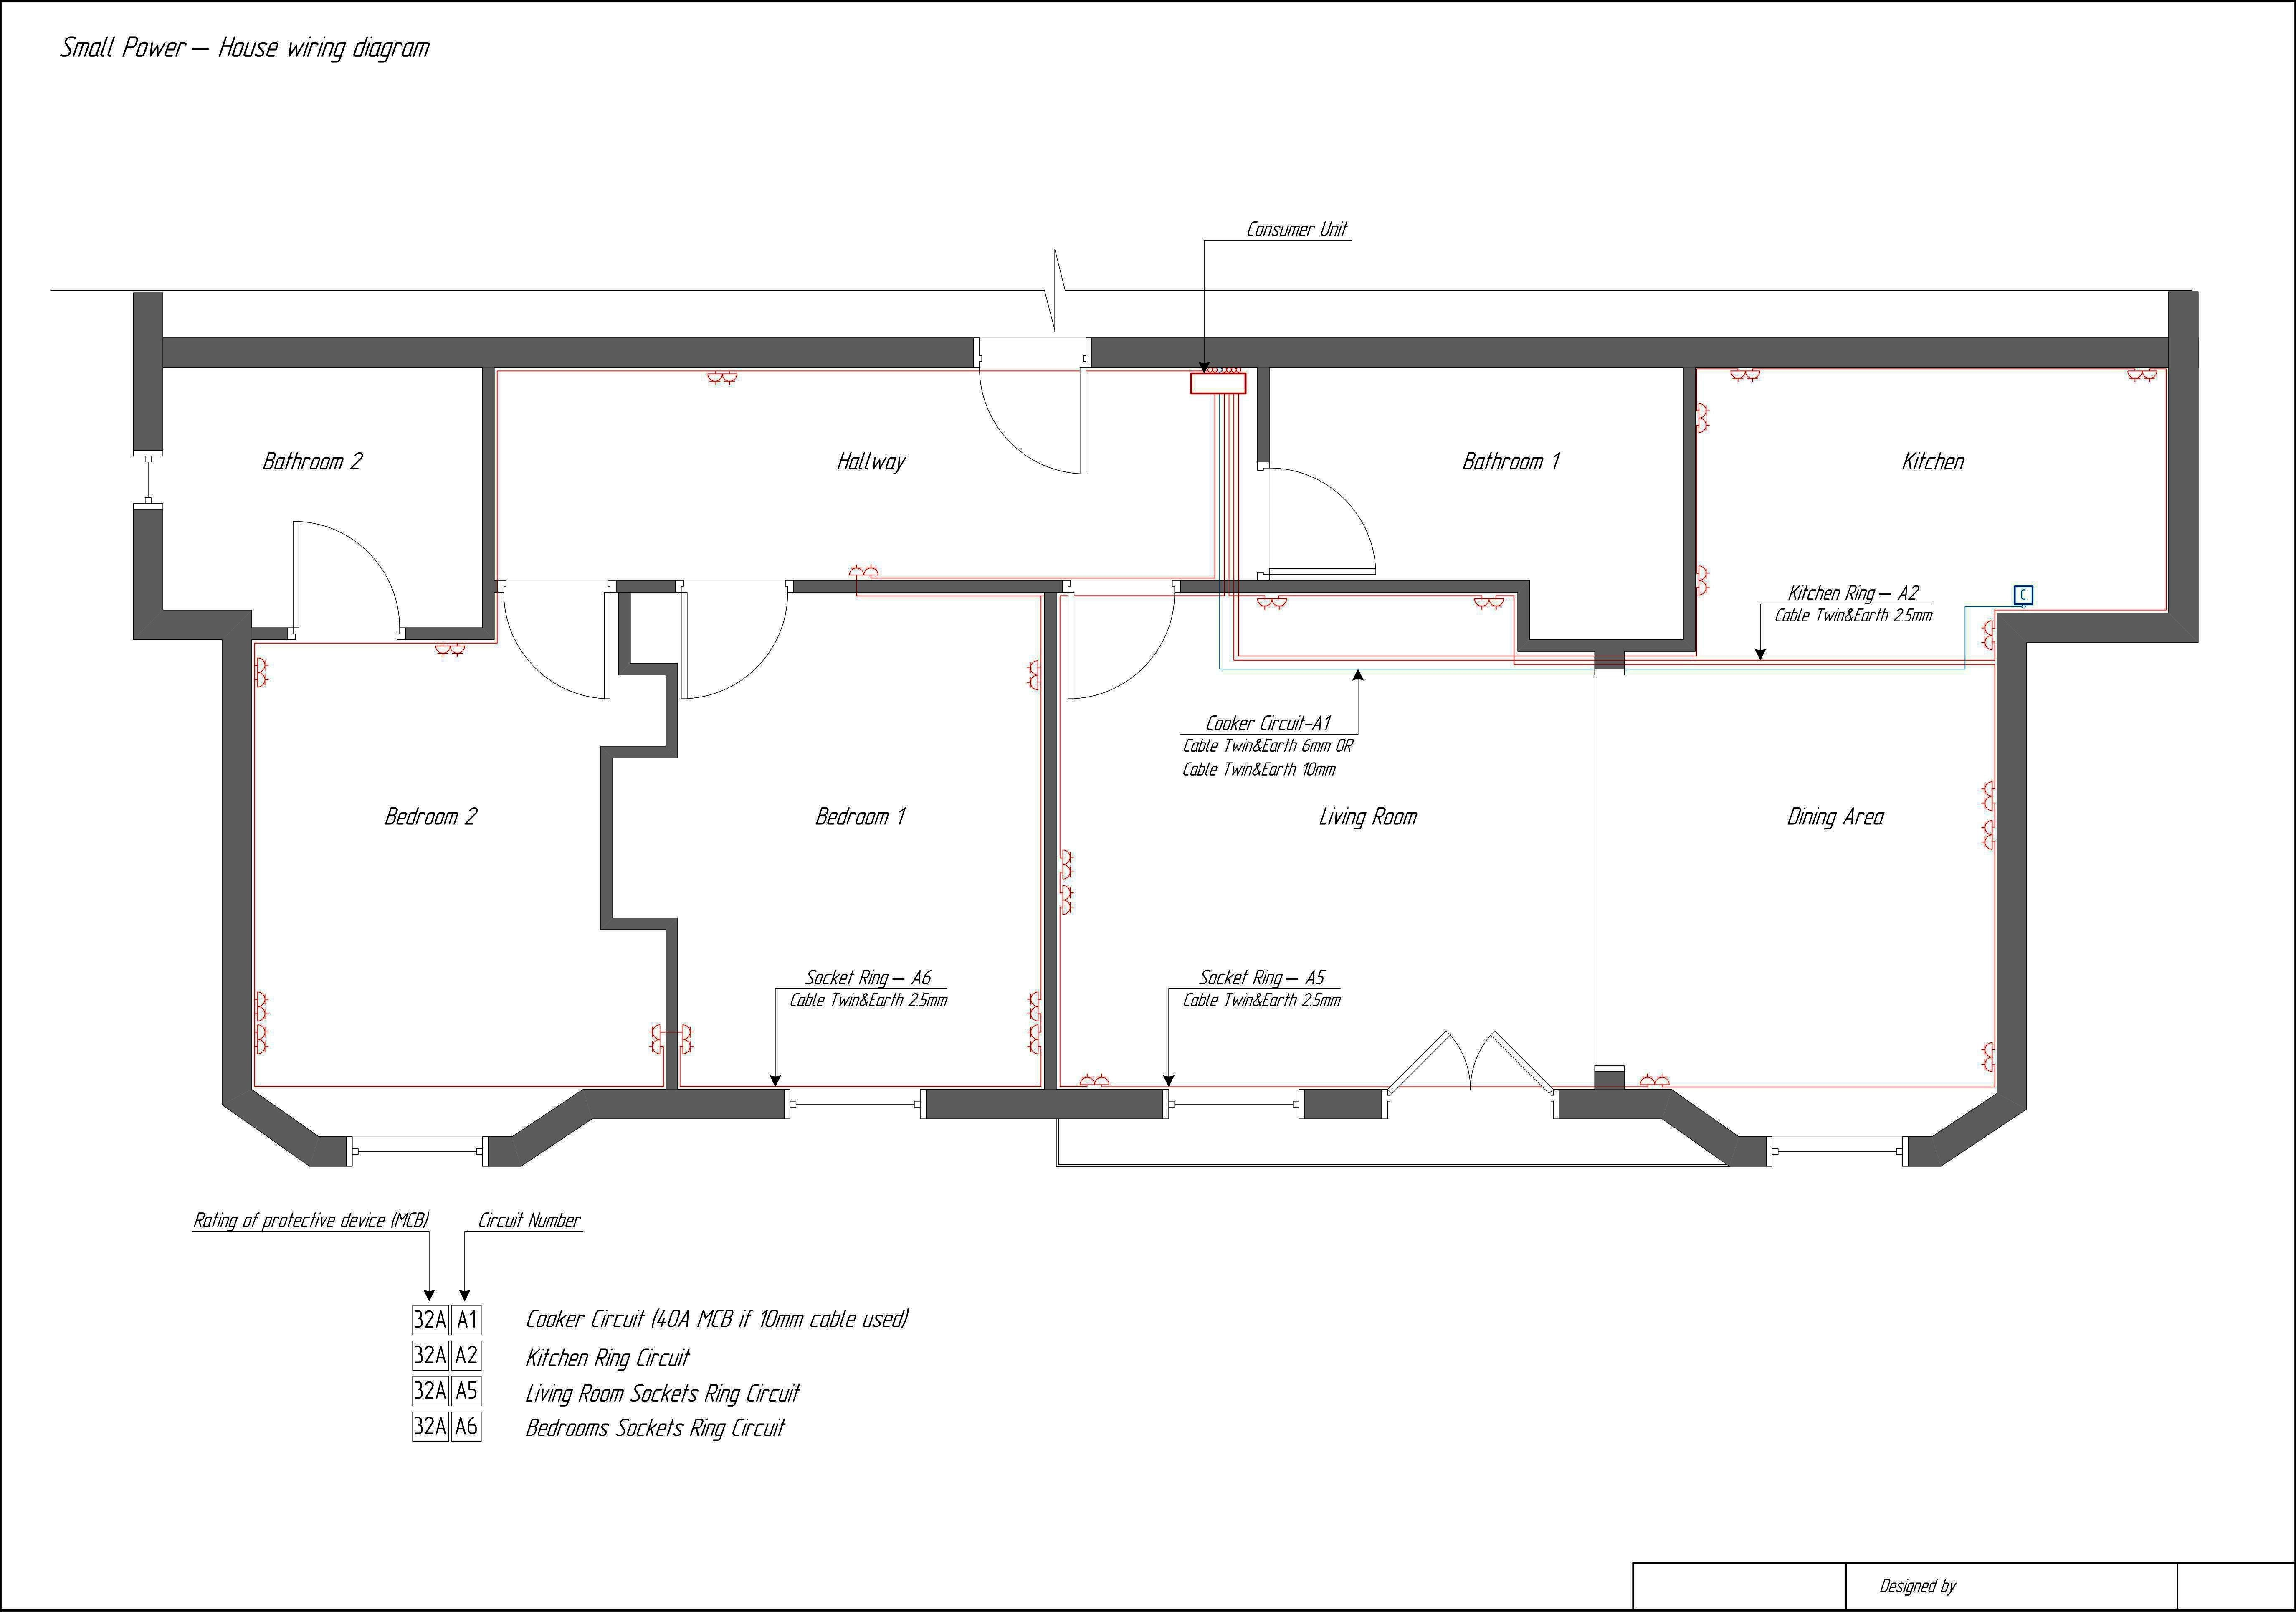 mobile home wiring diagram yr 8912  mobile home electrical wiring diagram mobile home wiring diagram mobile home electrical wiring diagram